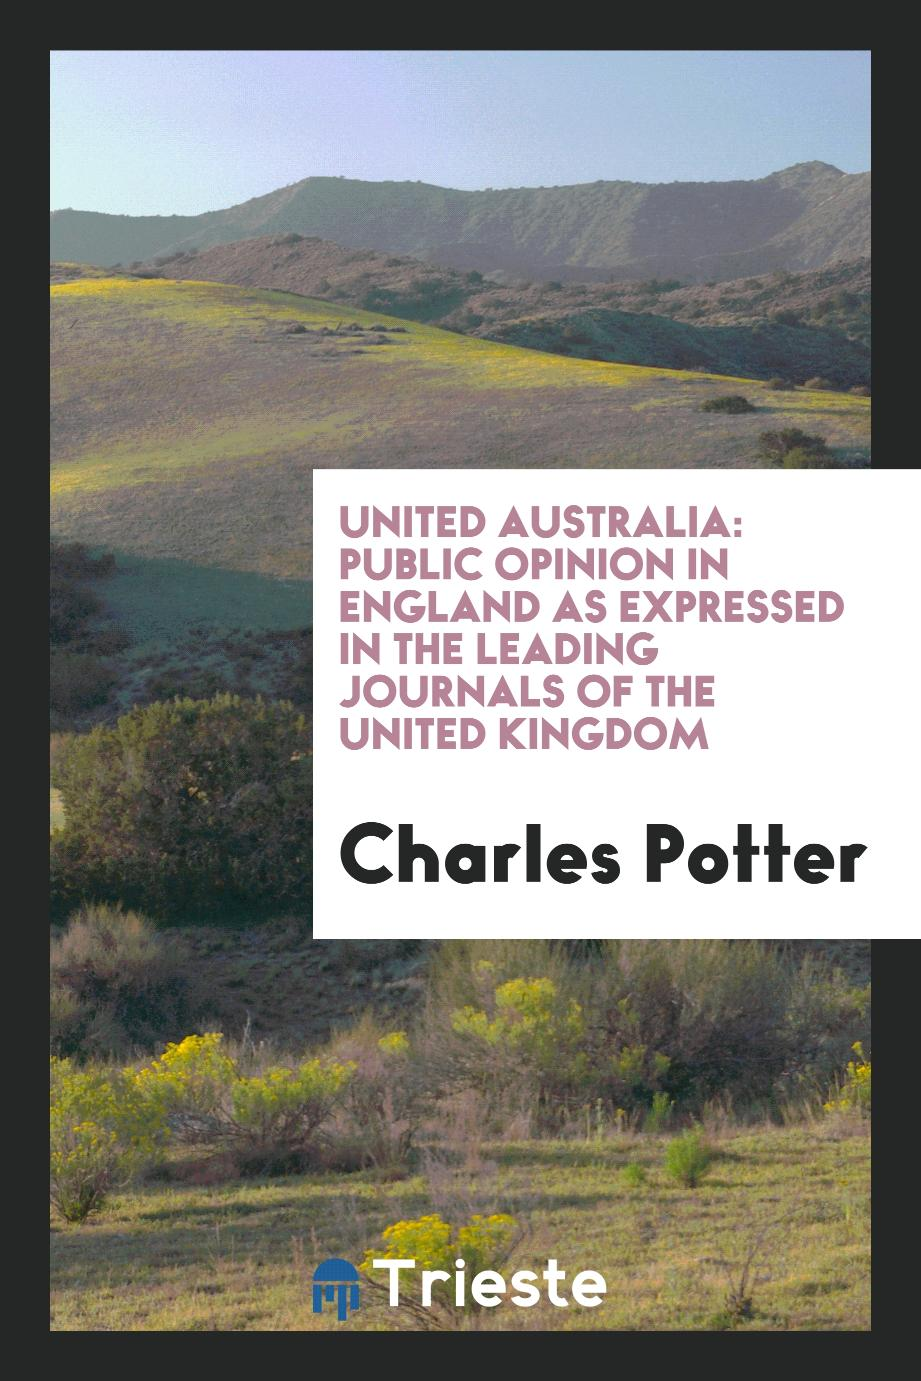 United Australia: Public Opinion in England as Expressed in the Leading Journals of the United Kingdom